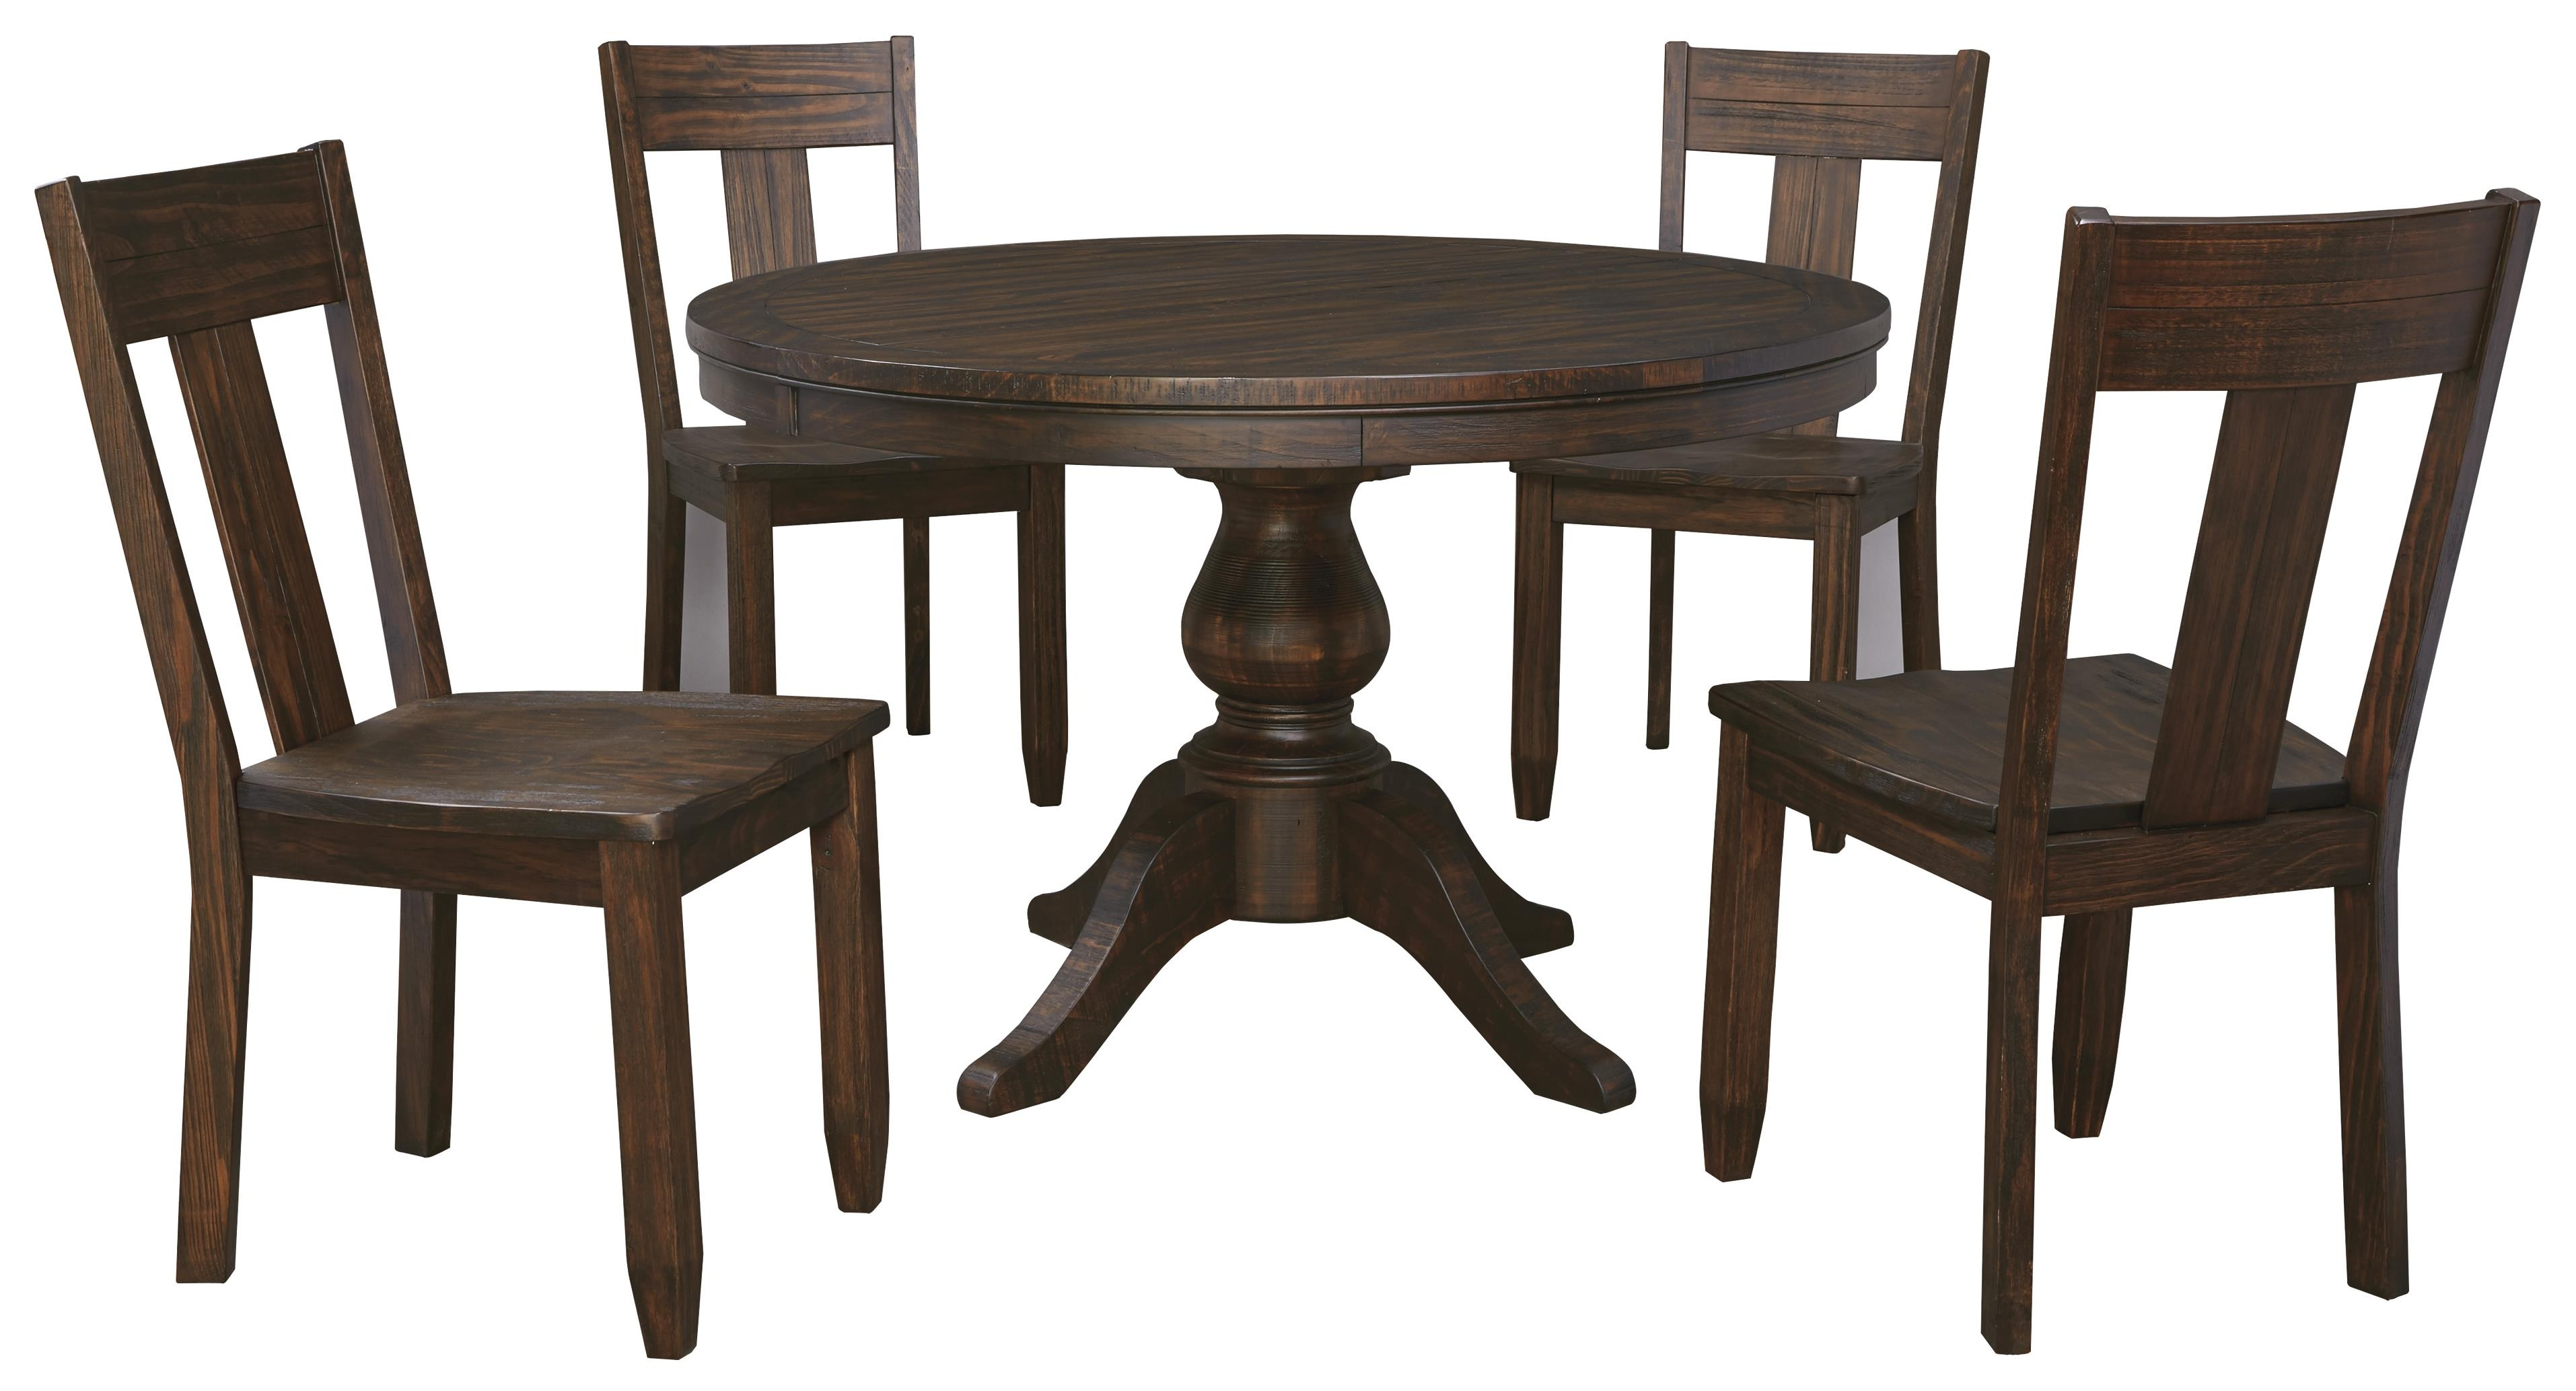 5 Piece Round Dining Table Set – Castrophotos Within Current Macie Round Dining Tables (Image 2 of 20)